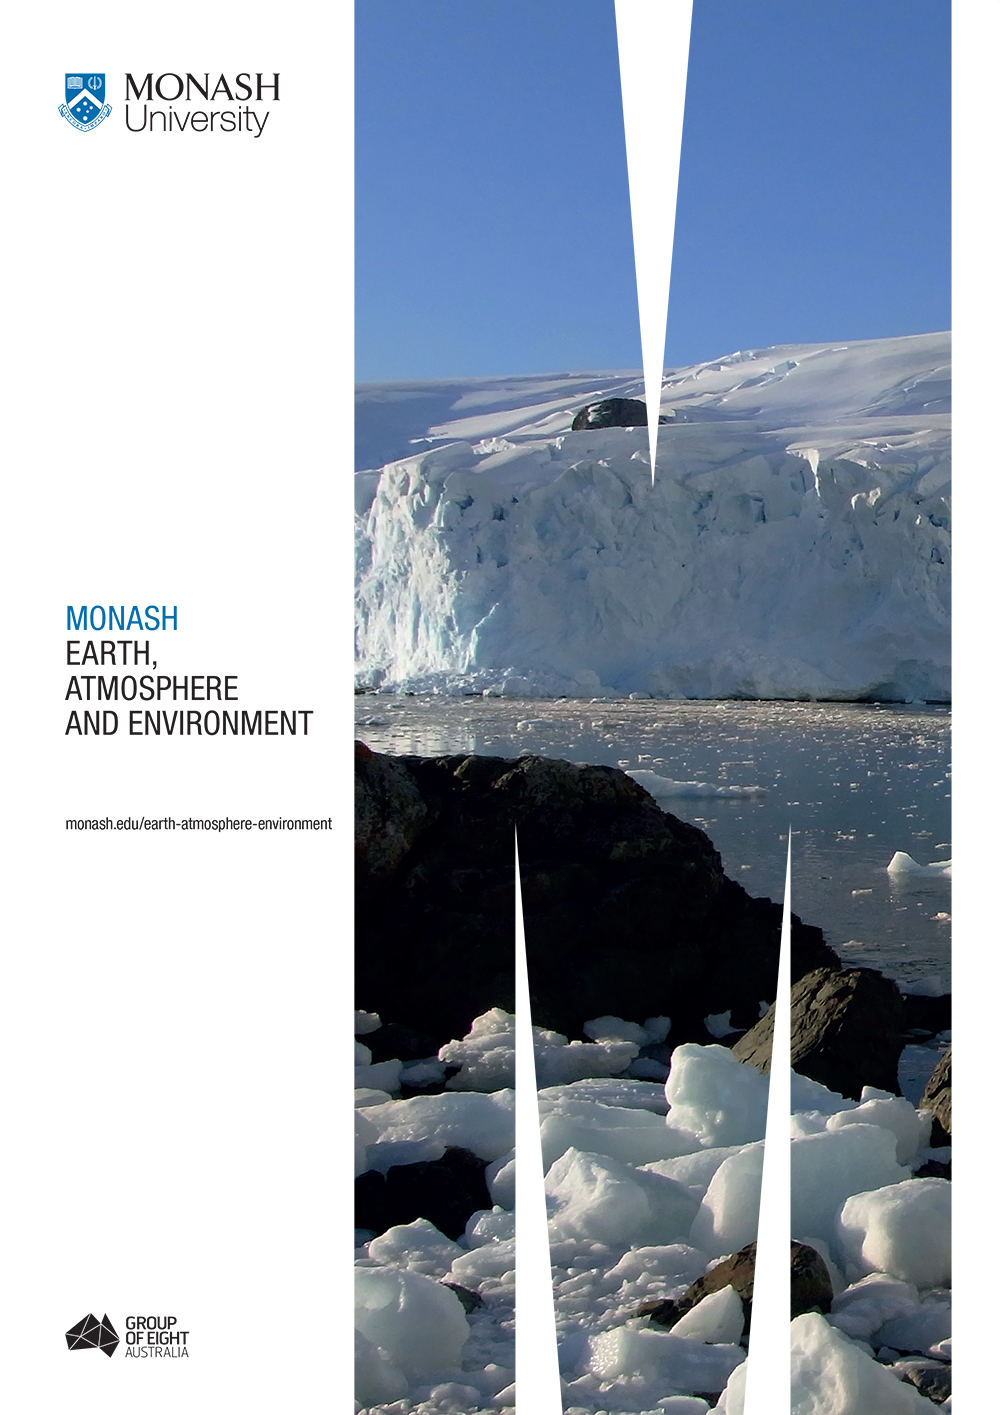 Monash Earth, Atmosphere and Environment Guide